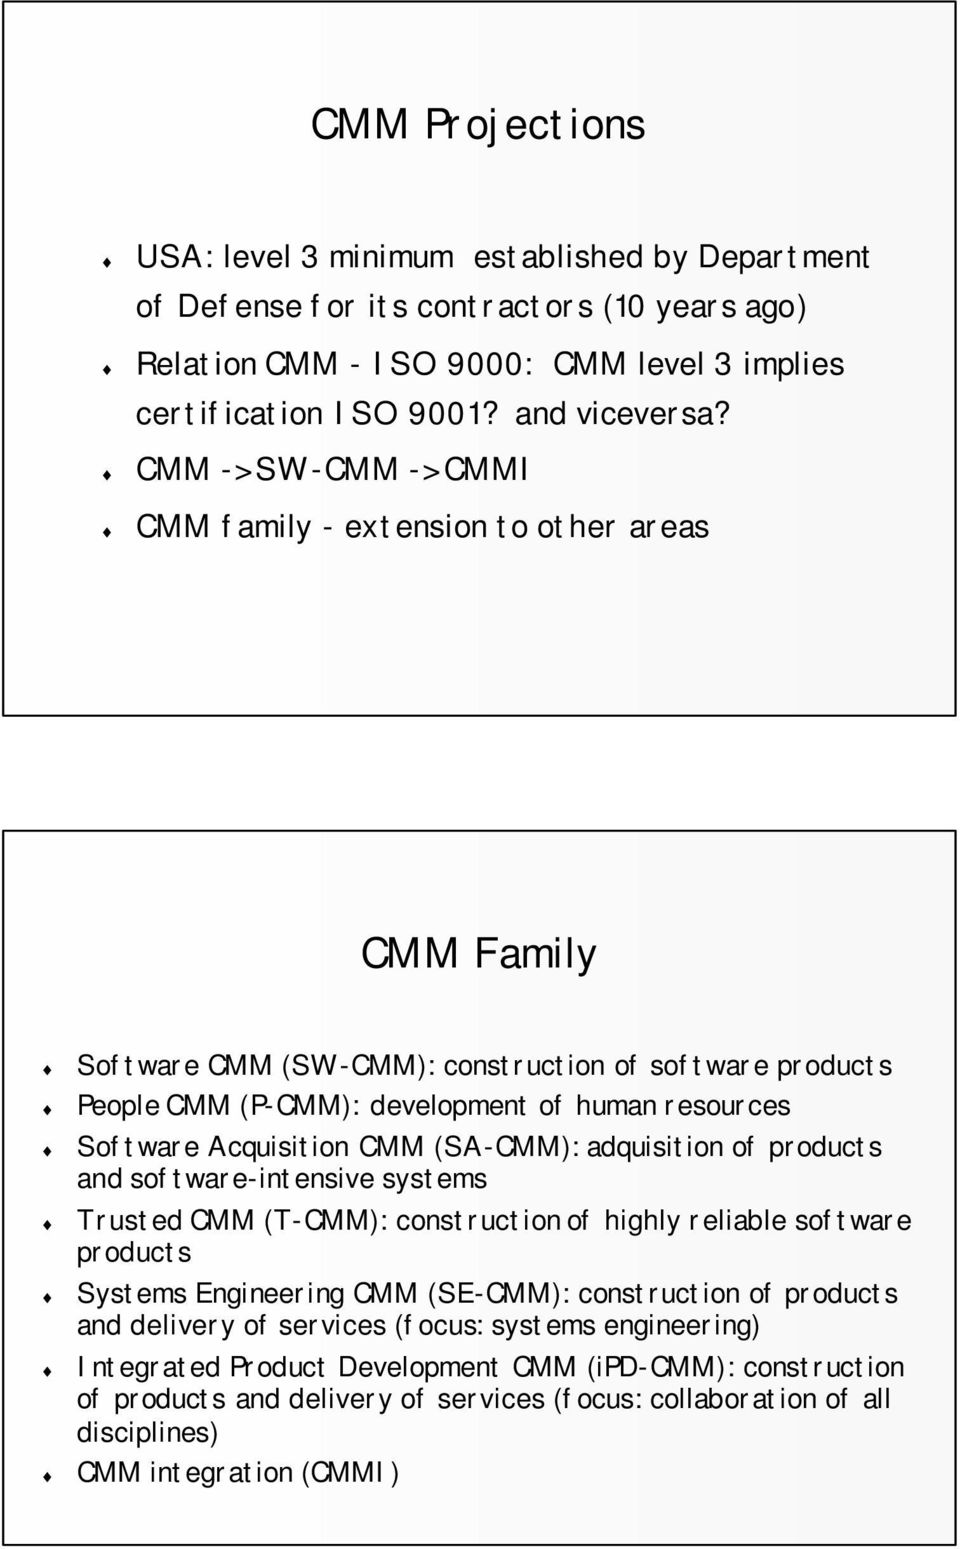 CMM (SA-CMM): adquisition of products and software-intensive systems Trusted CMM (T-CMM): construction of highly reliable software products Systems Engineering CMM (SE-CMM): construction of products